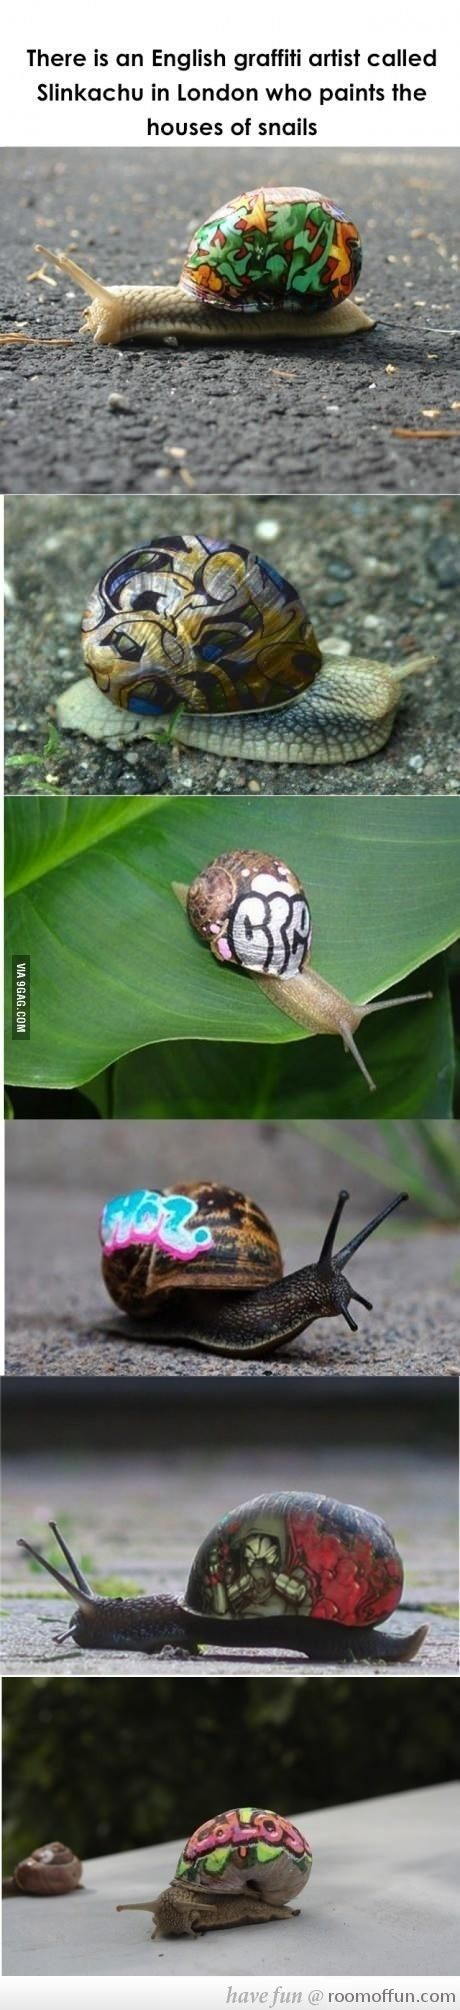 Snail Graffiti - There is a graffiti artist from London that paints on the shells of snails! | re-pinned by http://www.wfpblogs.com/author/rachelwfp/